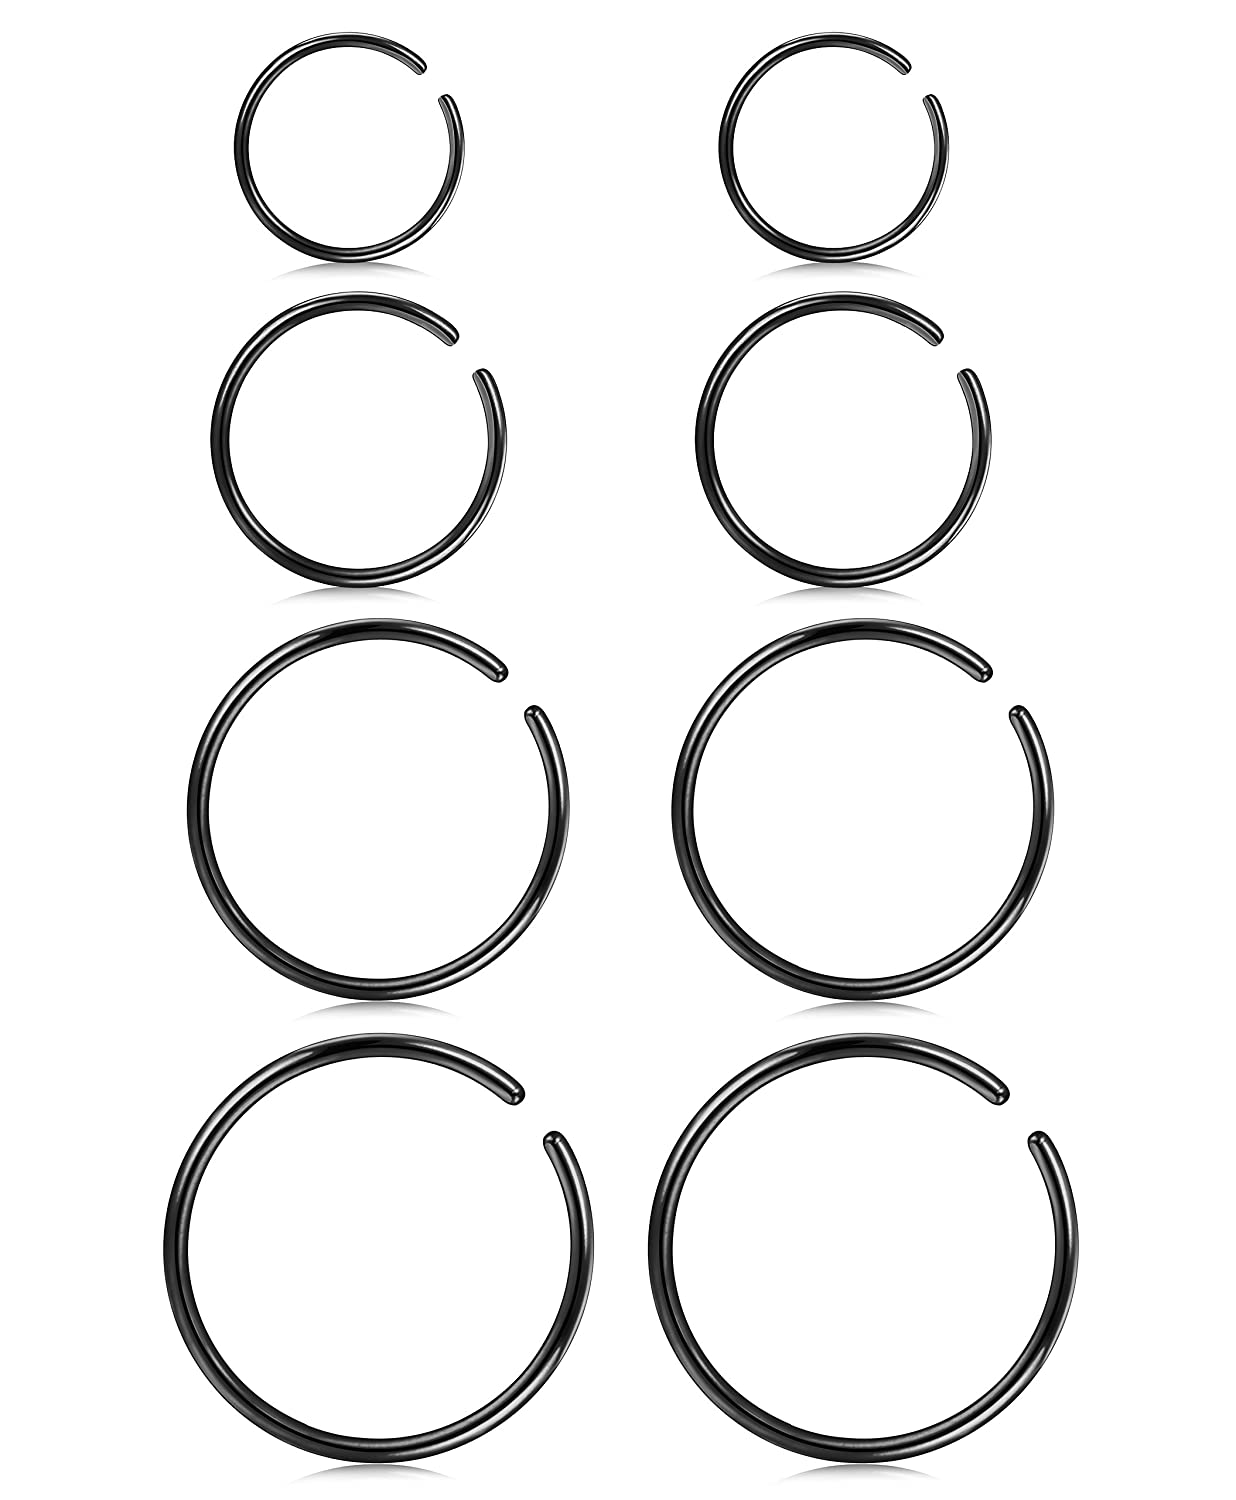 LOYALLOOK 4 Pairs Stainless Steel Clip on Fake Nose Lip Helix Cartilage Tragus Ear Hoop Ring 20G 6mm/8mm/10mm/12mm DGP0002-S